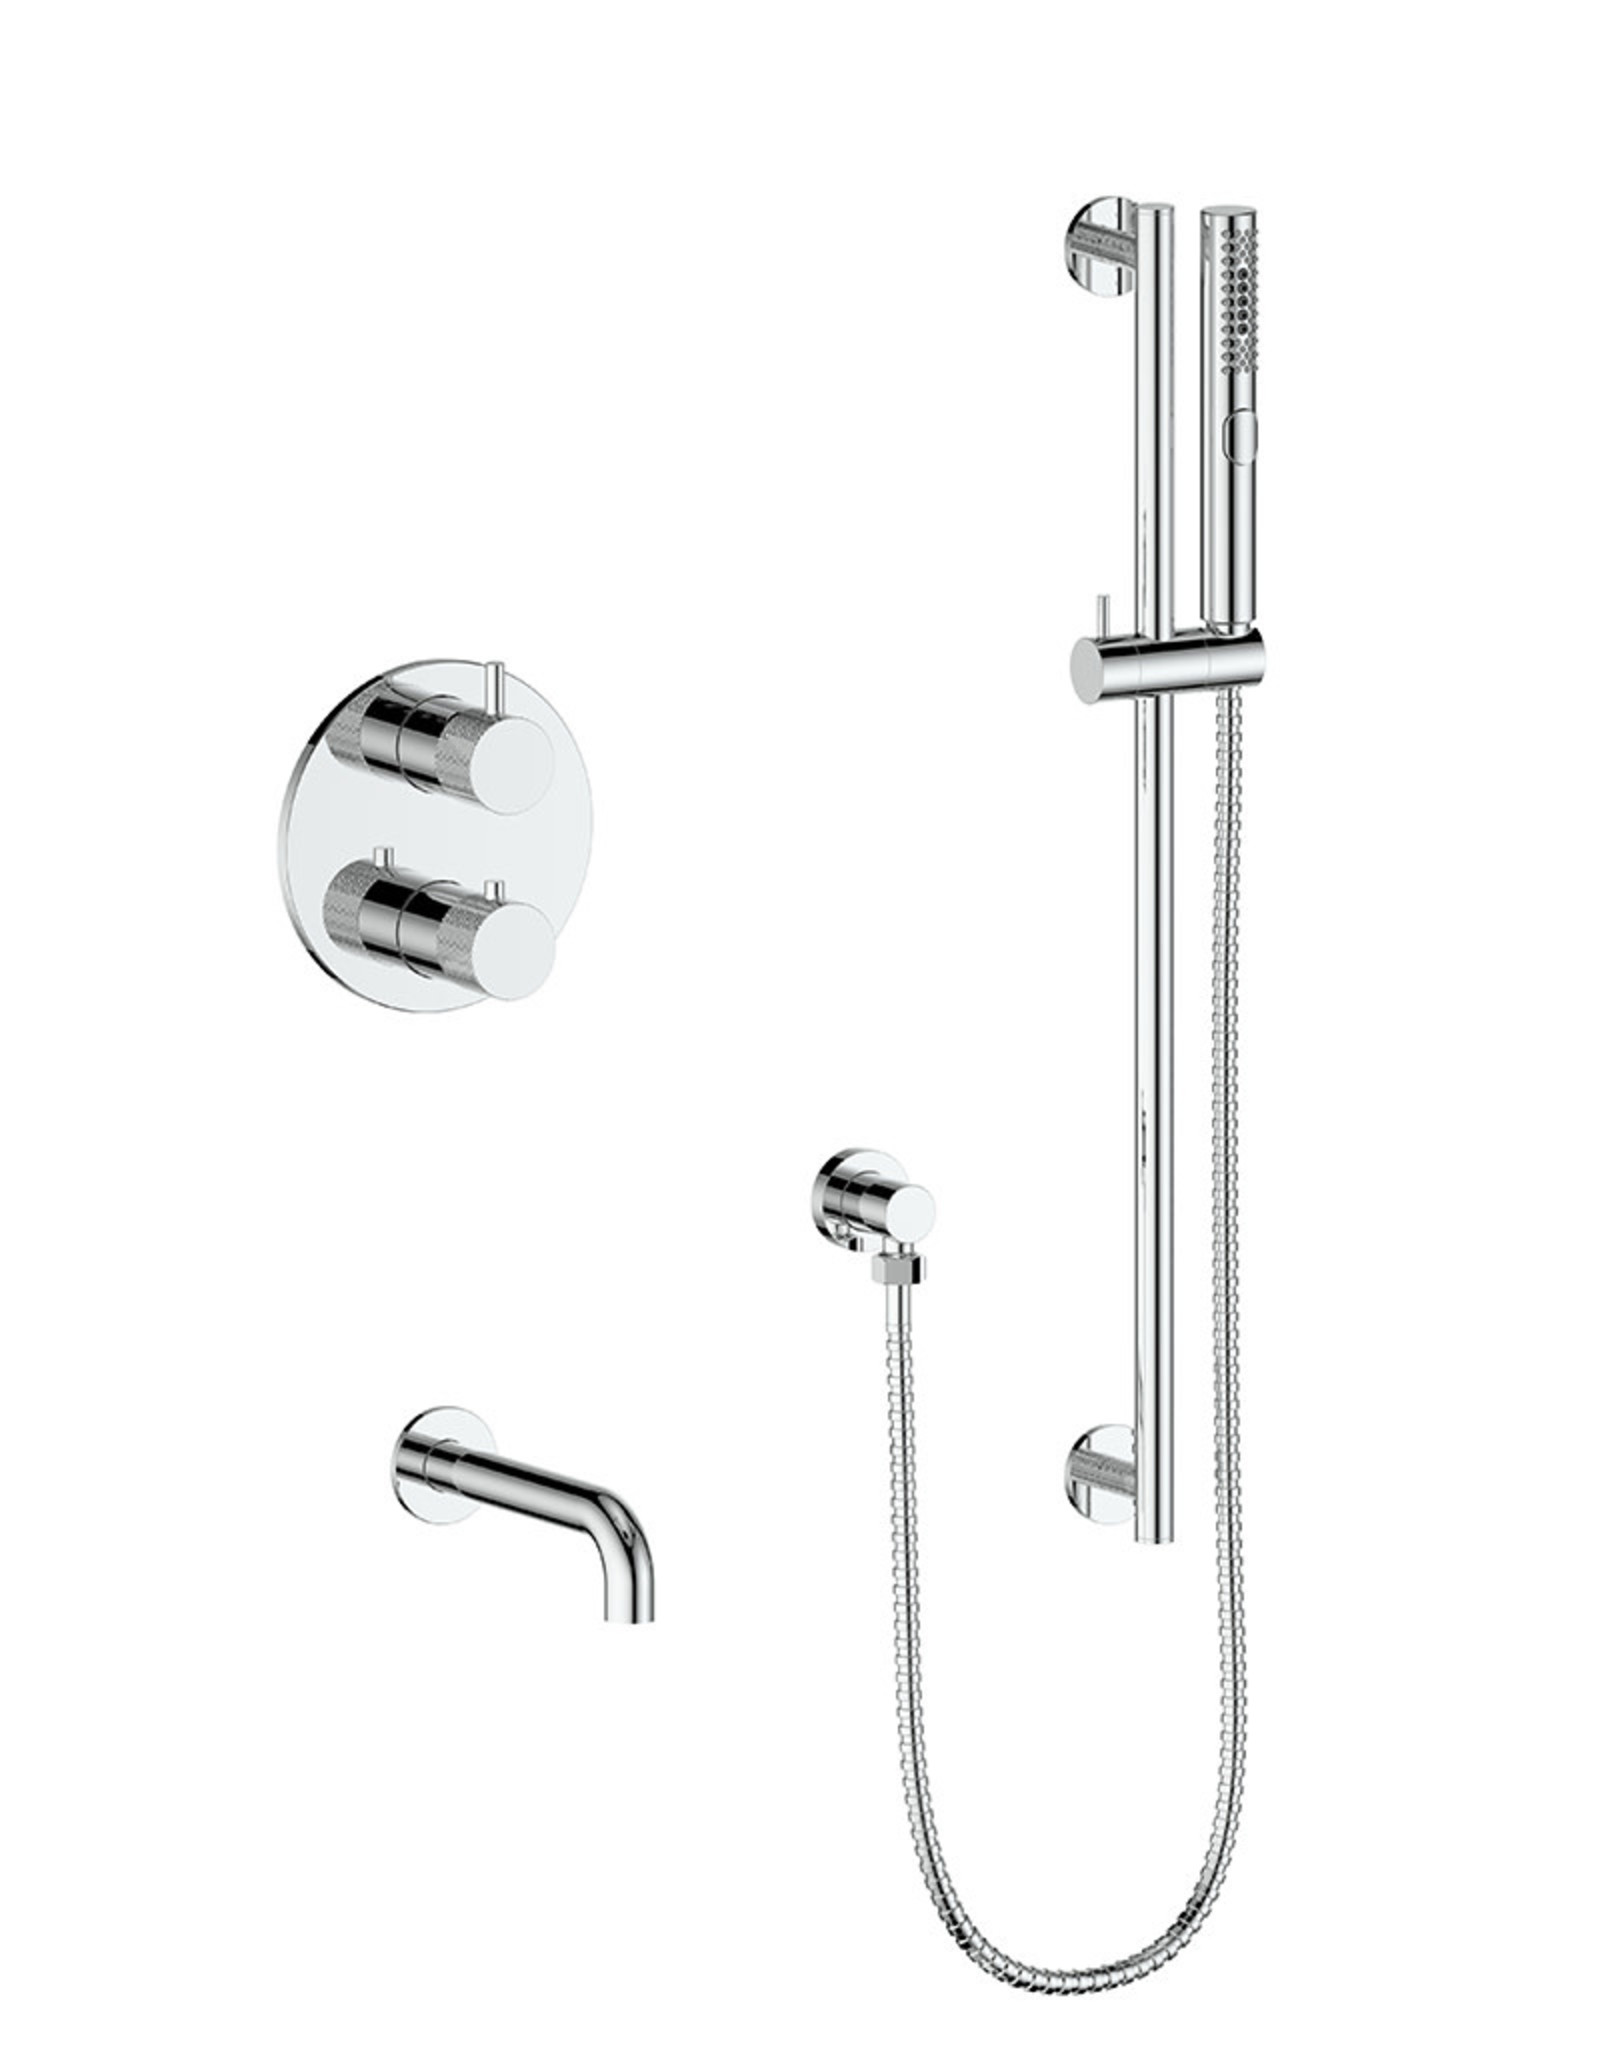 Vogt Drava 2-Way Thermostatic Shower System- Chrome